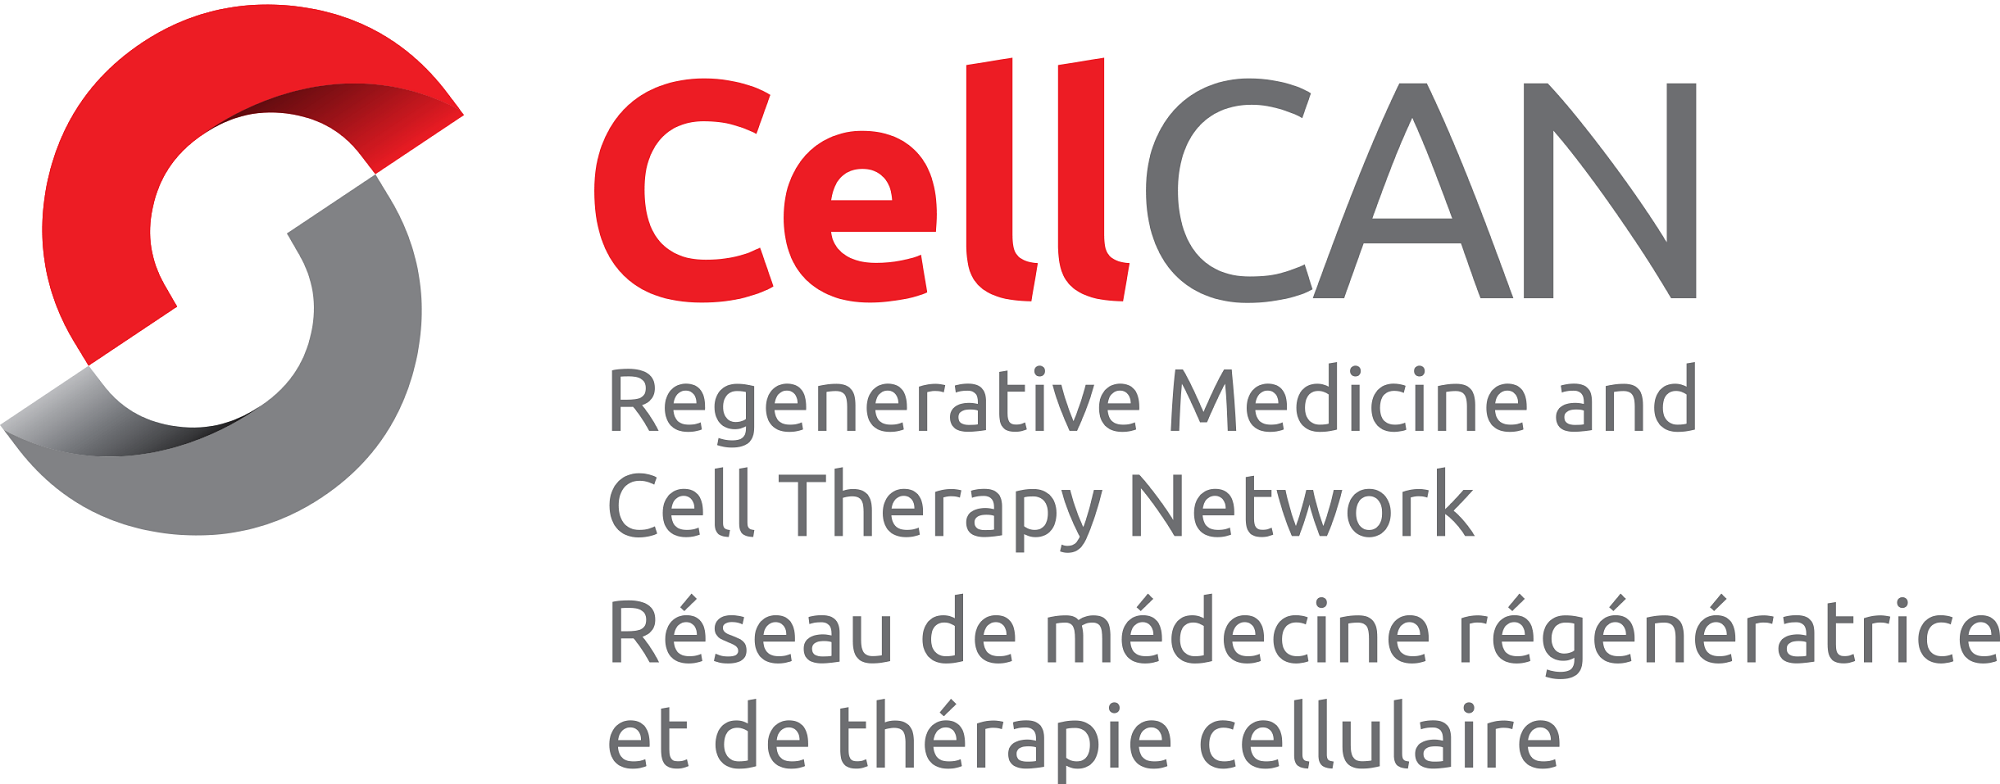 CellCAN Logo Bilingue CELLCAN ANG-FR v2